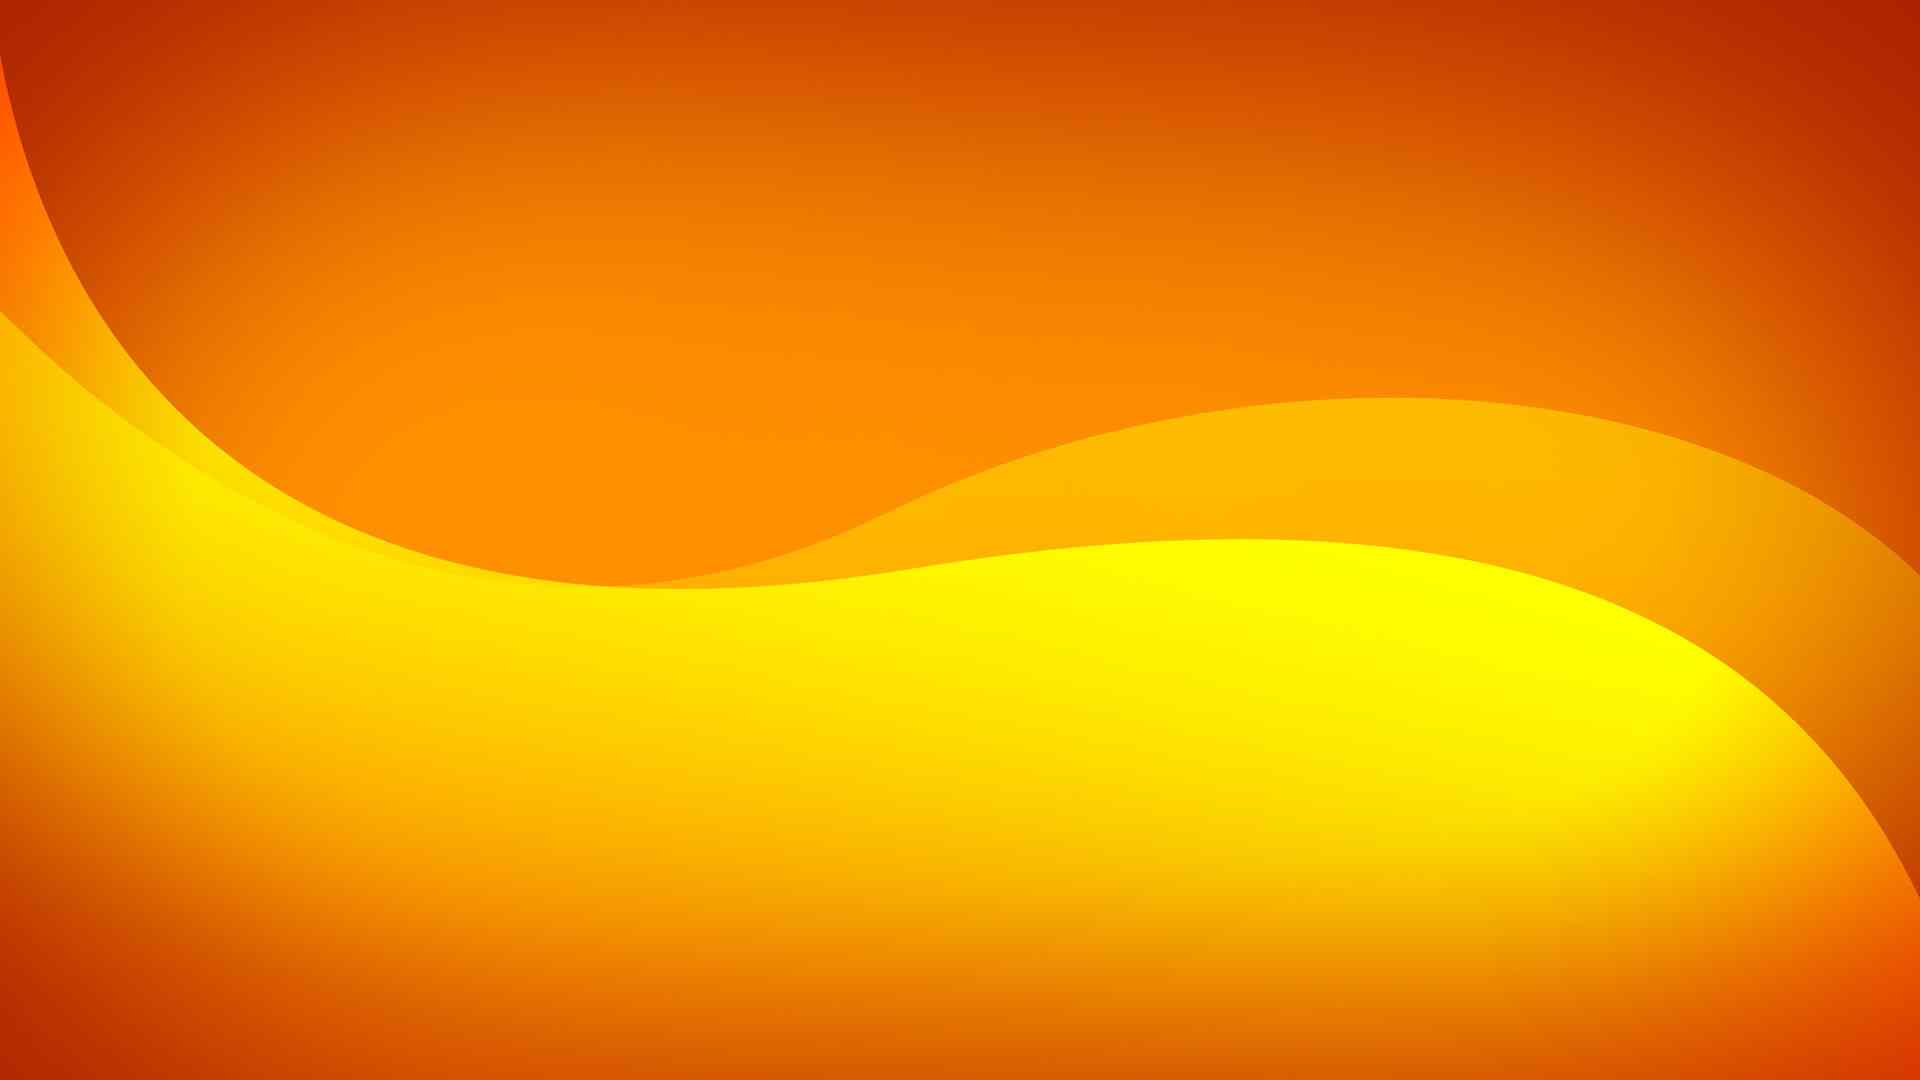 Cool Orange Backgrounds Hd galleryhipcom   The Hippest 1920x1080